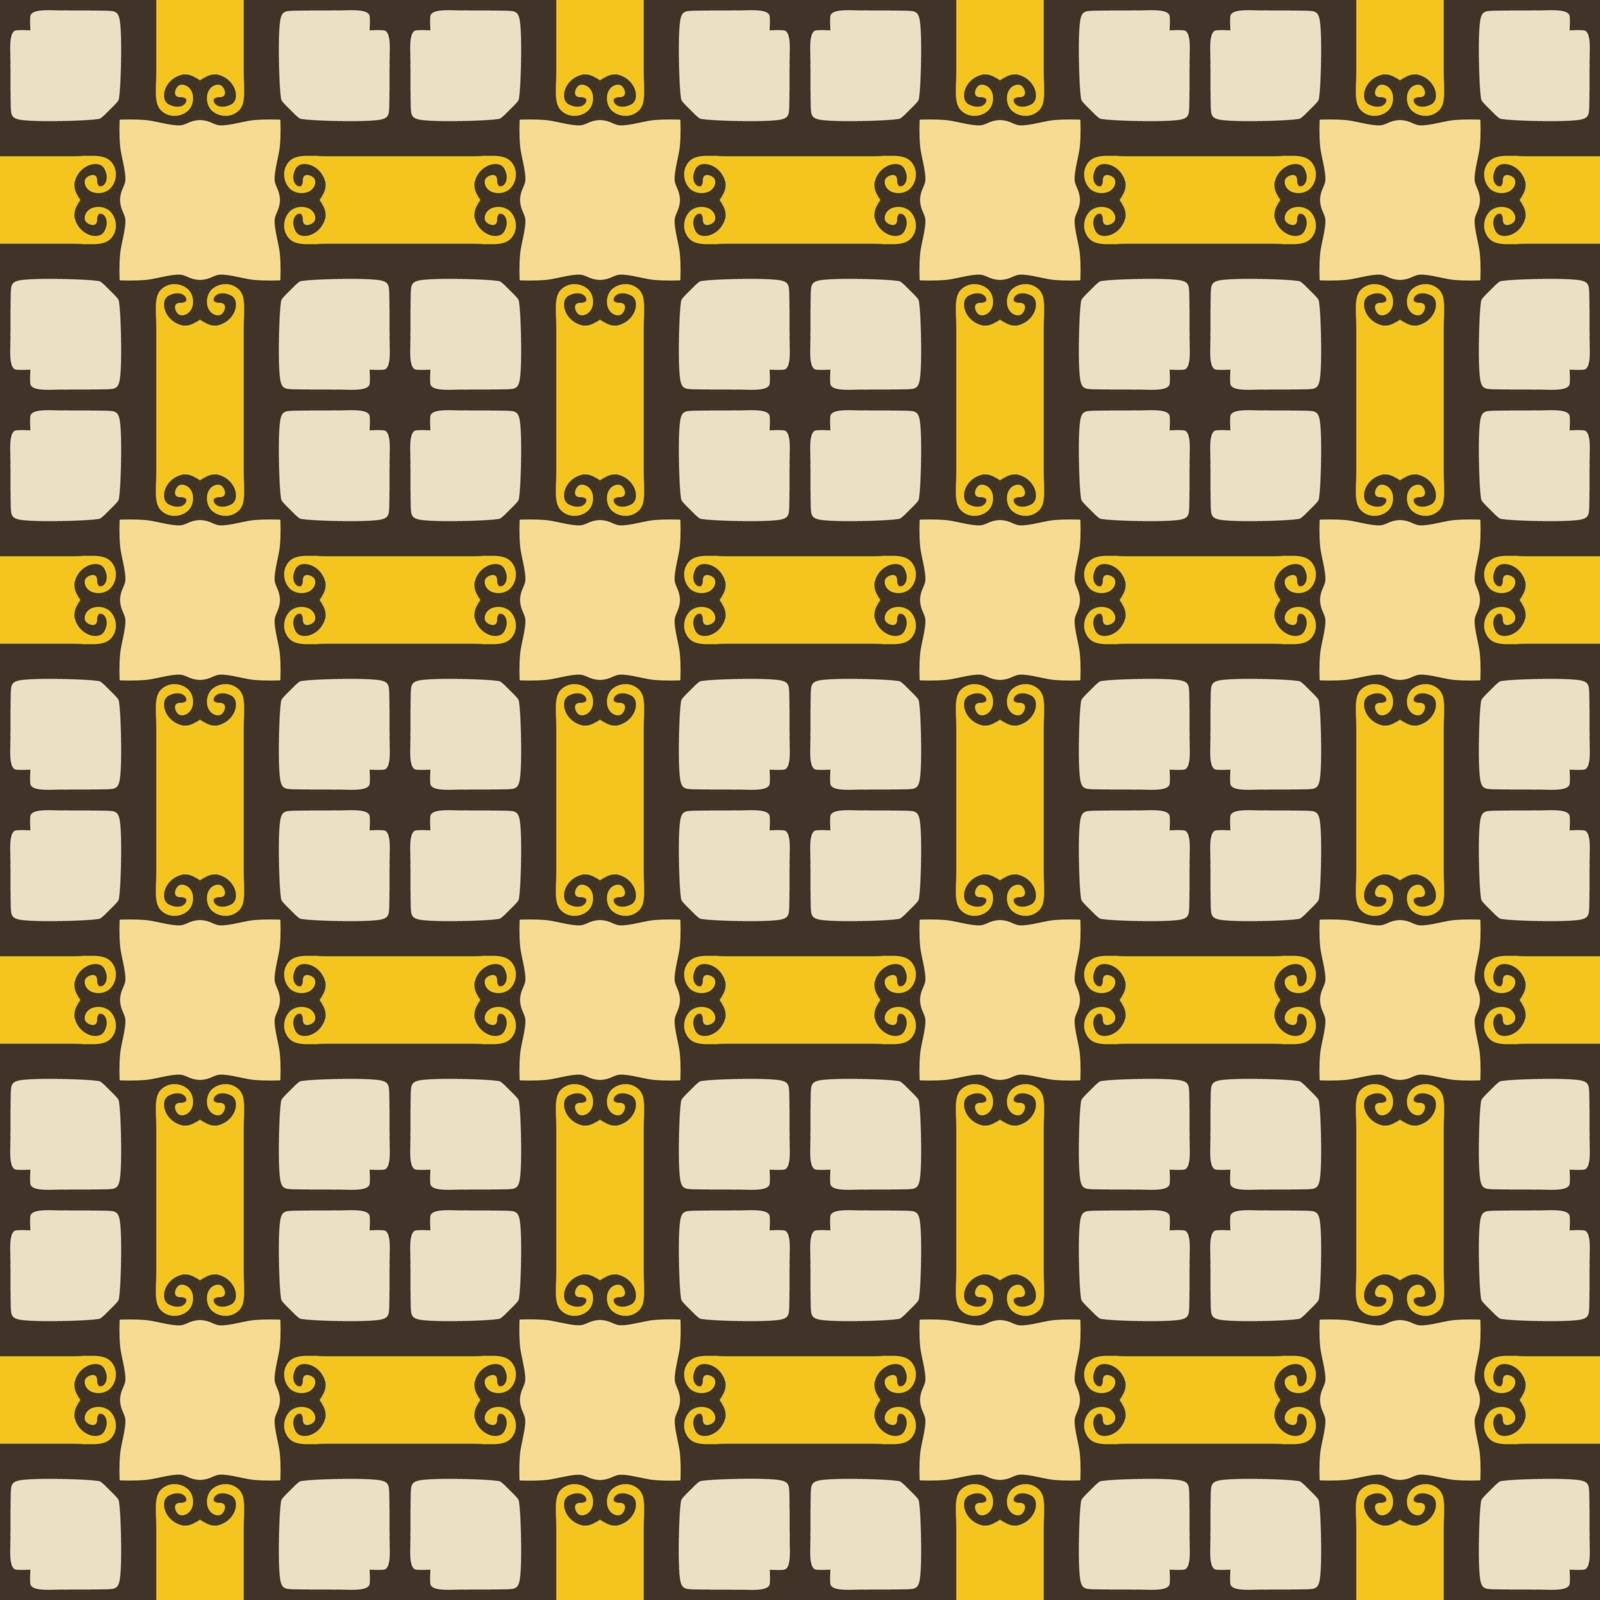 Seamless illustrated pattern made of abstract elements in beige, yellow and black